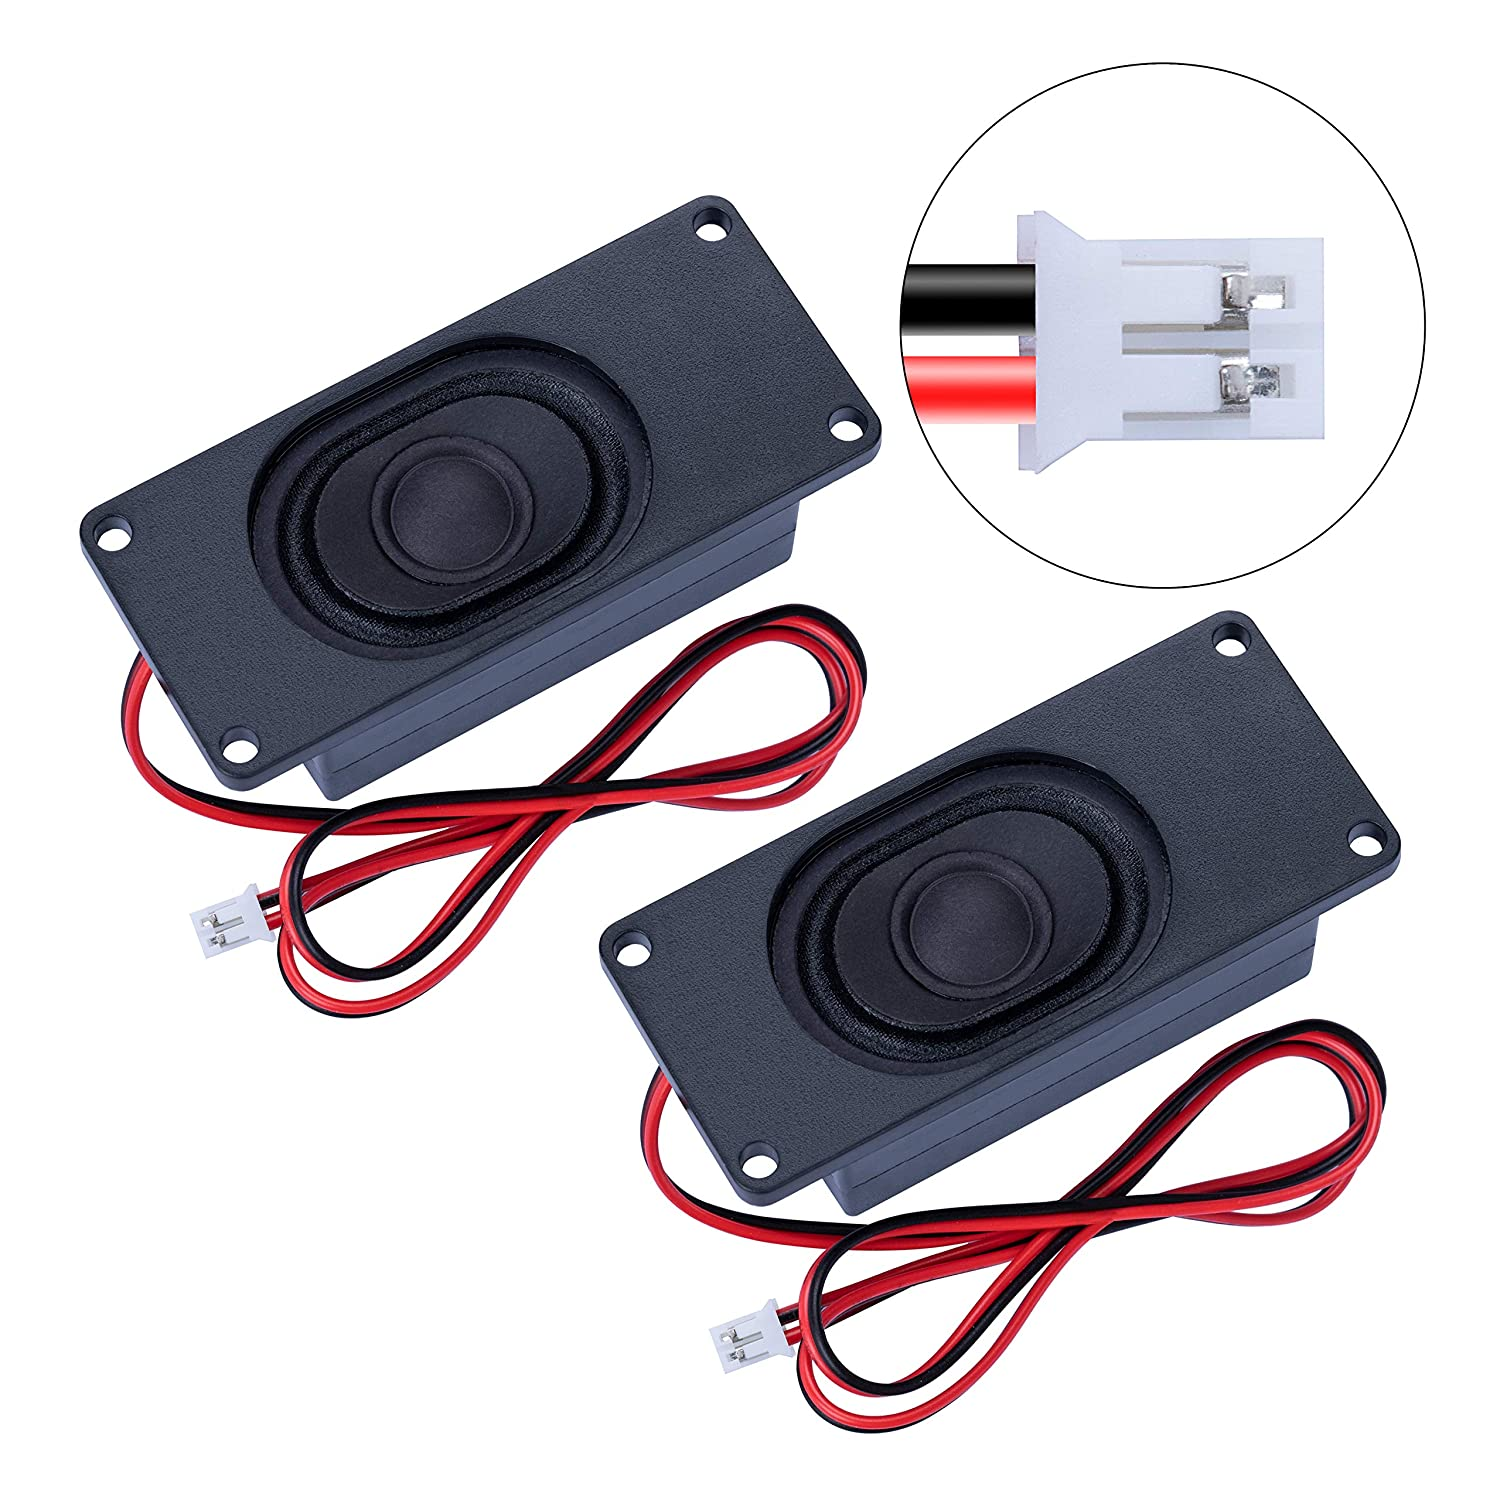 CQRobot Speaker 5 Watt 8 Ohm for Arduino JST-PH2.0 Interface It is Ideal for a Variety of Small Electronic Projects.